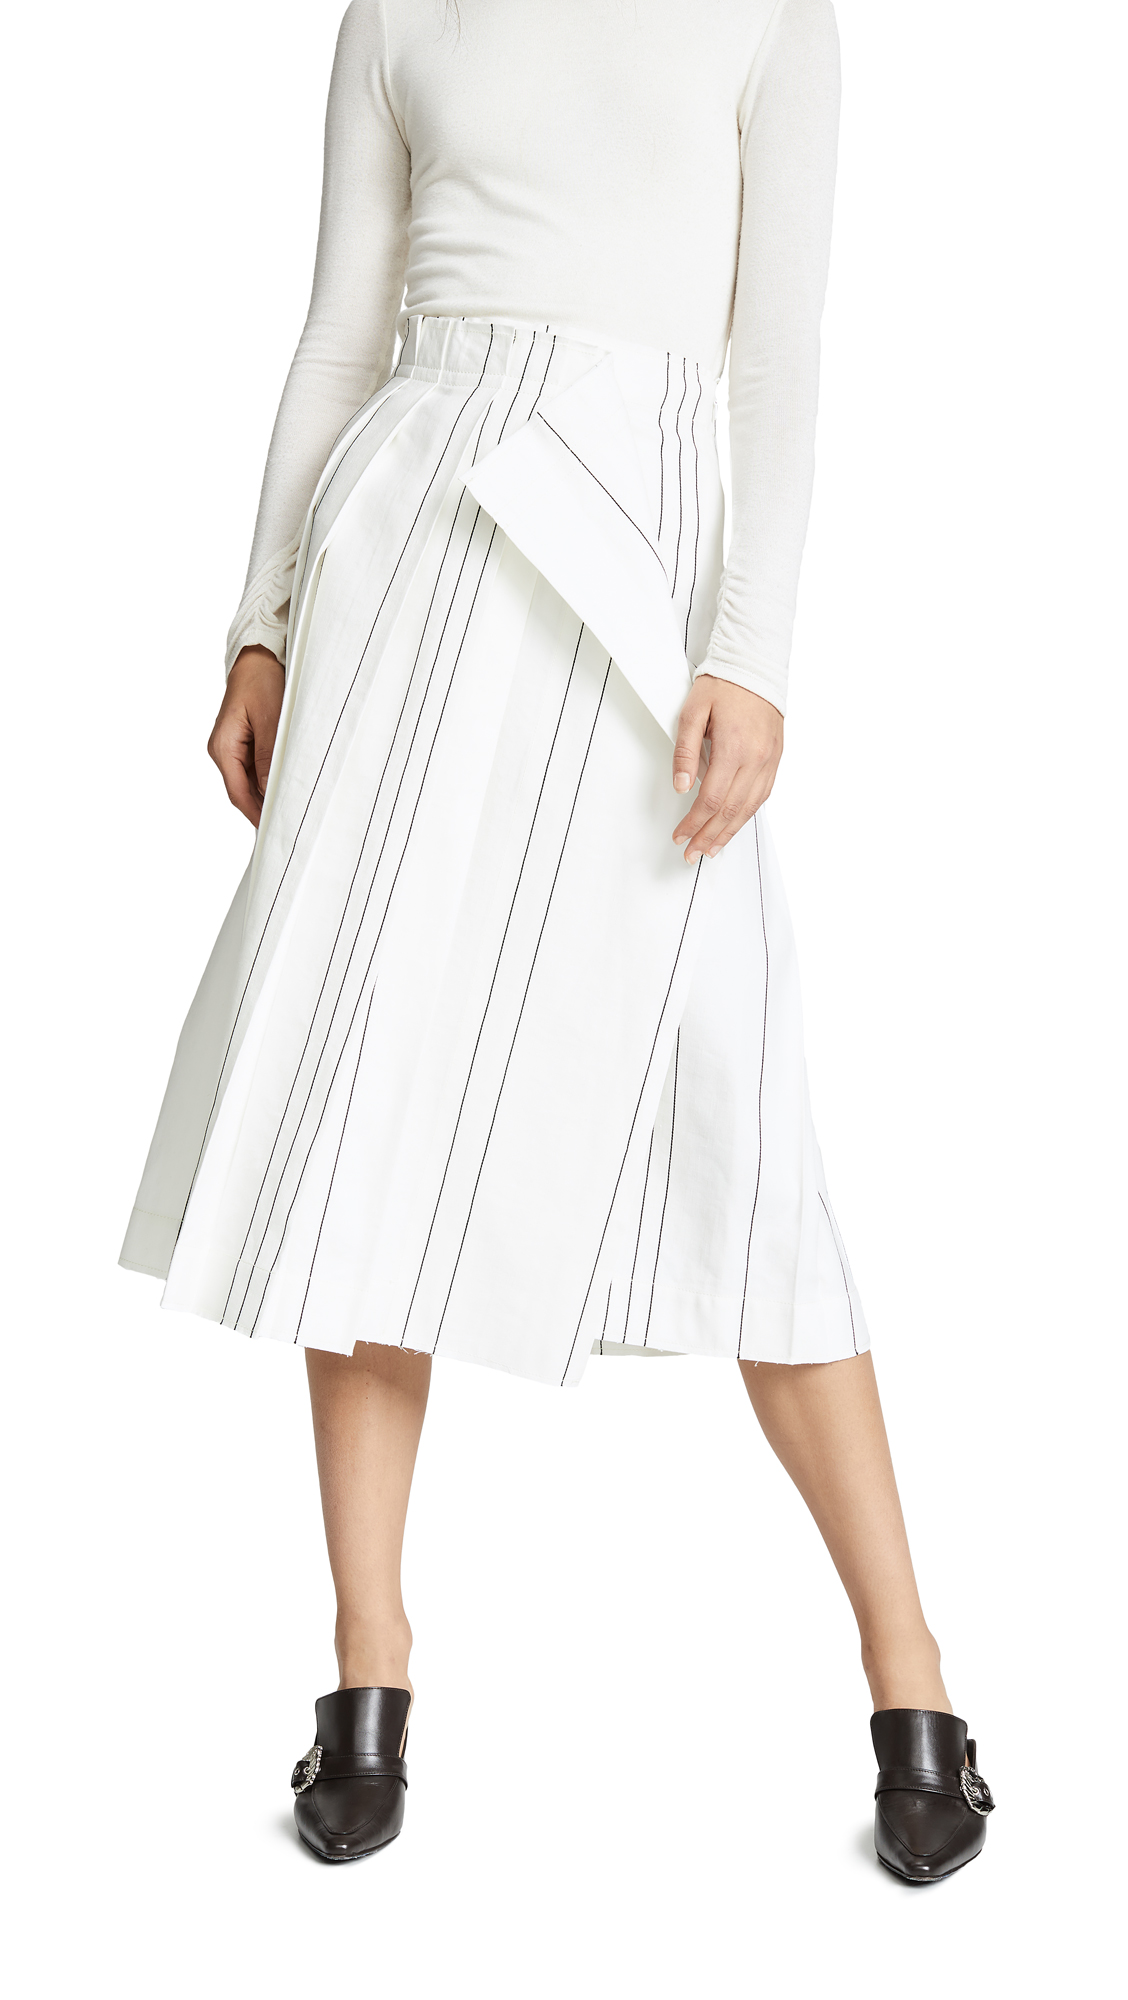 Cedric Charlier Pleated Midi Skirt - Fantasy Print White